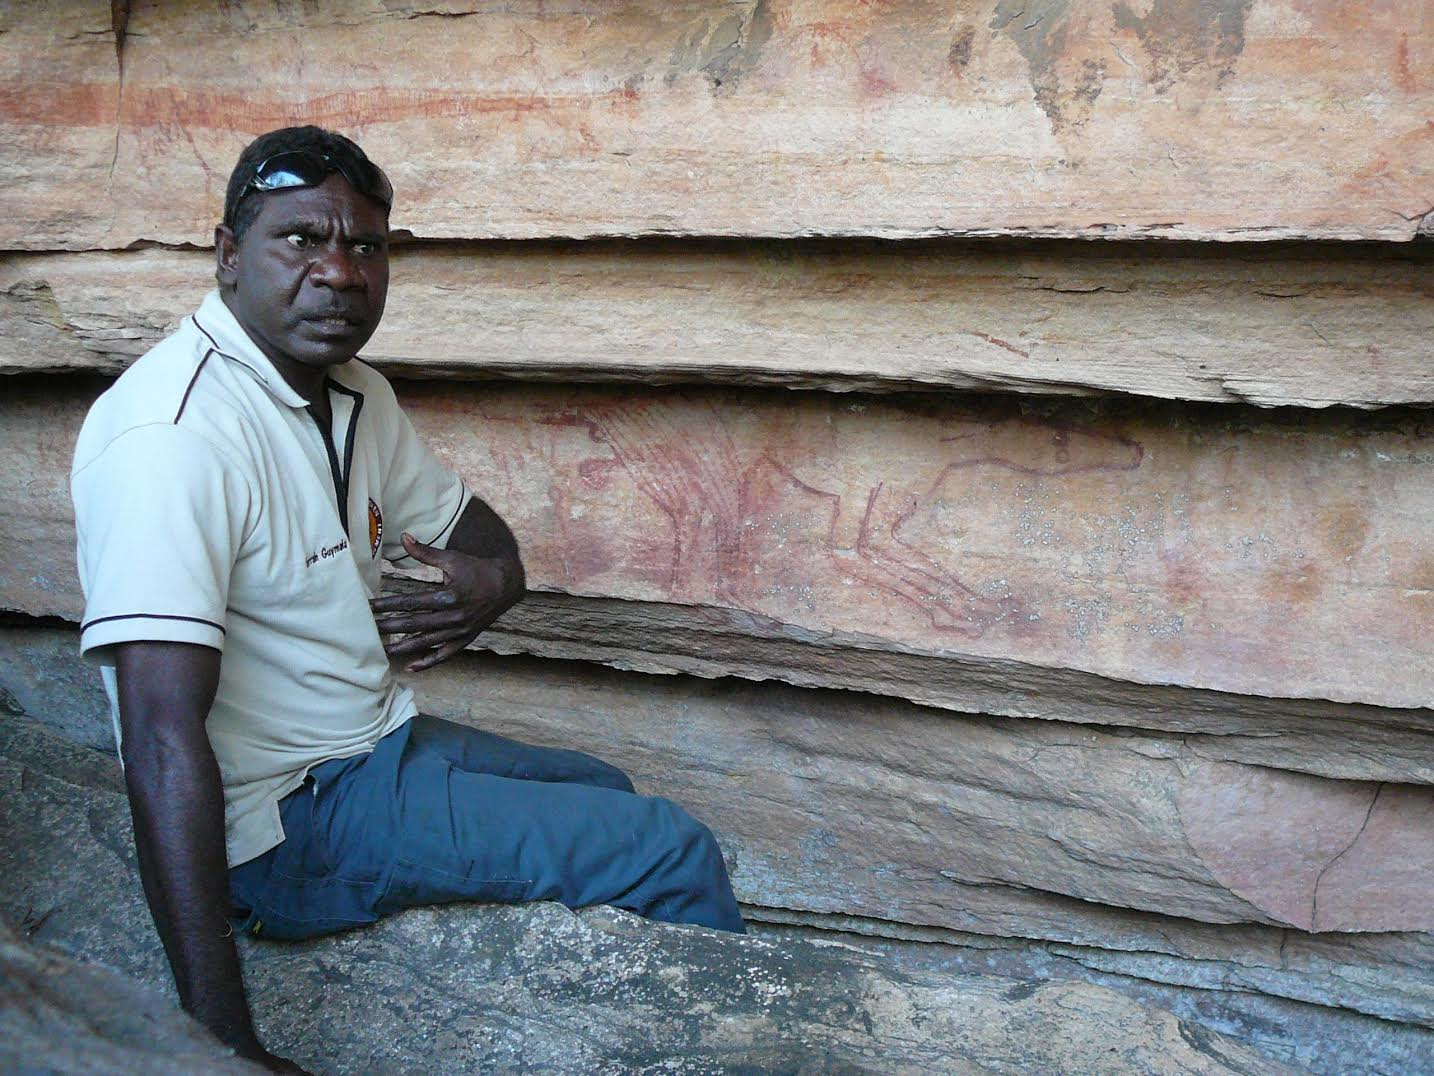 Terrah_Diliyoung_Guymala_Terrah_with_a_rock_art_depiction_of_a_thylacine_(Tasmanian_tiger)__which_is_widely_depicted_in_the_rock_art_of_the_Warddeken_IPA_Warddeken_Land_Management.jpg